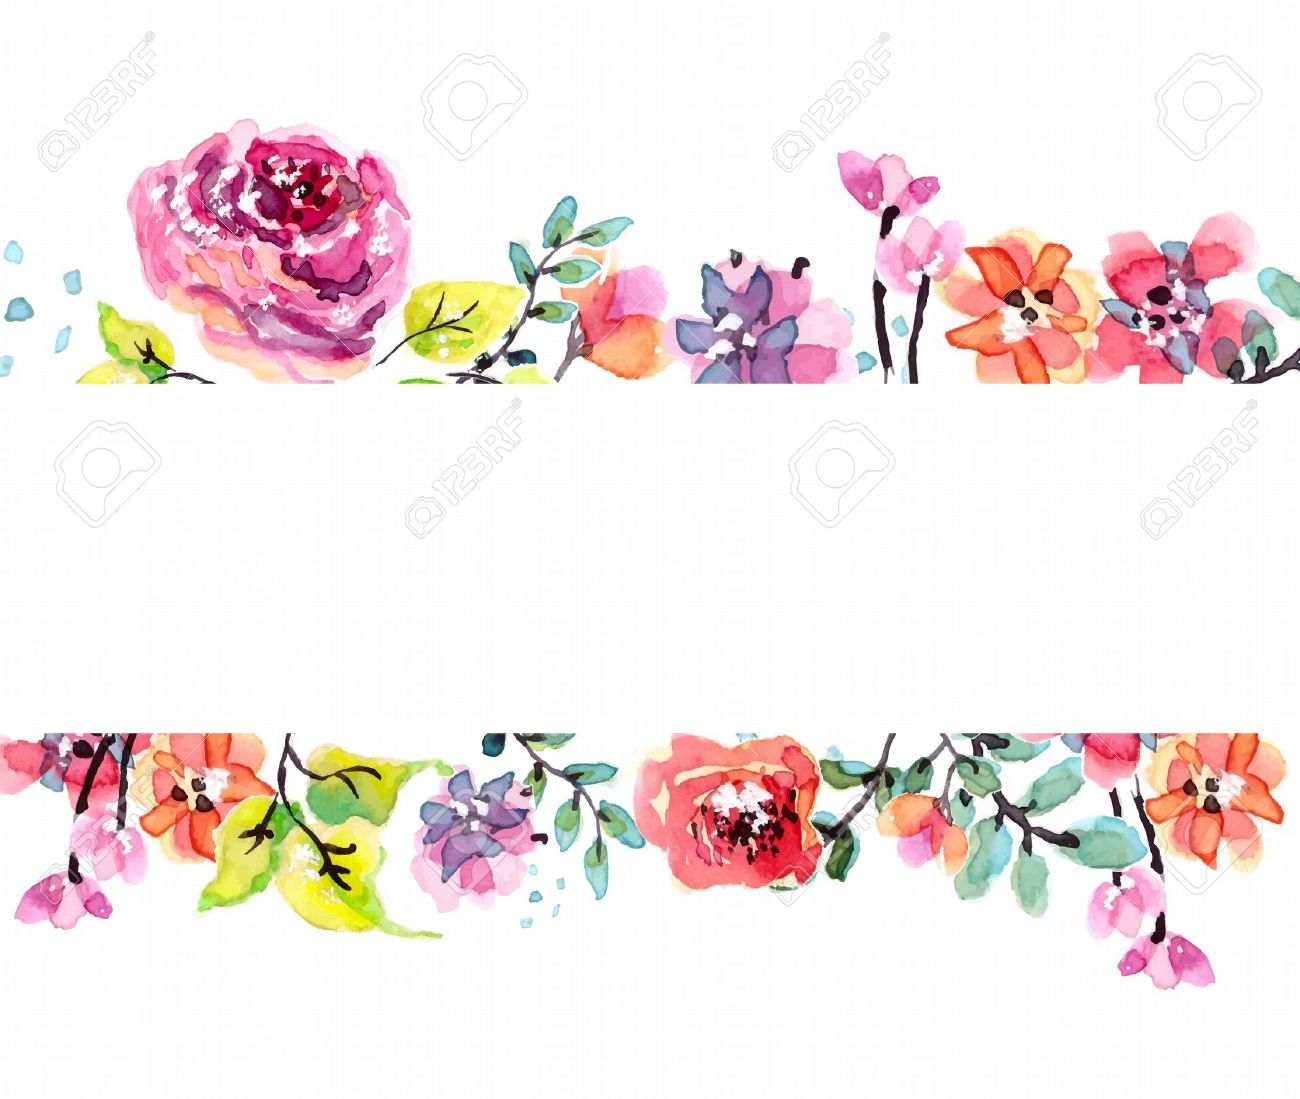 Watercolor Floral Frame Beautiful Natural Illustration Royalty Free